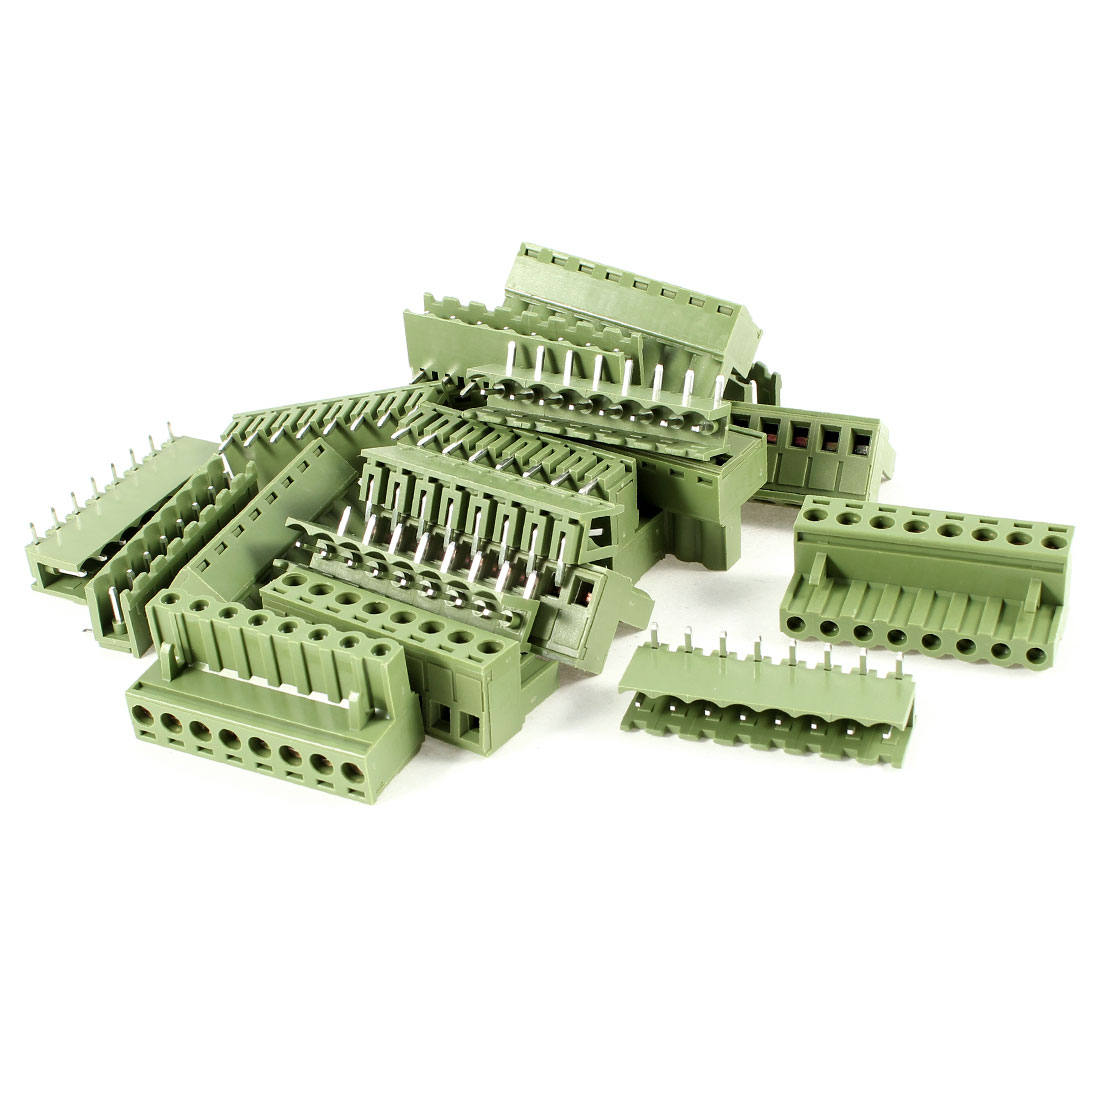 10 Sets 300V 10A Single Row 8 Positions Pluggable Terminal Block Oliver Green